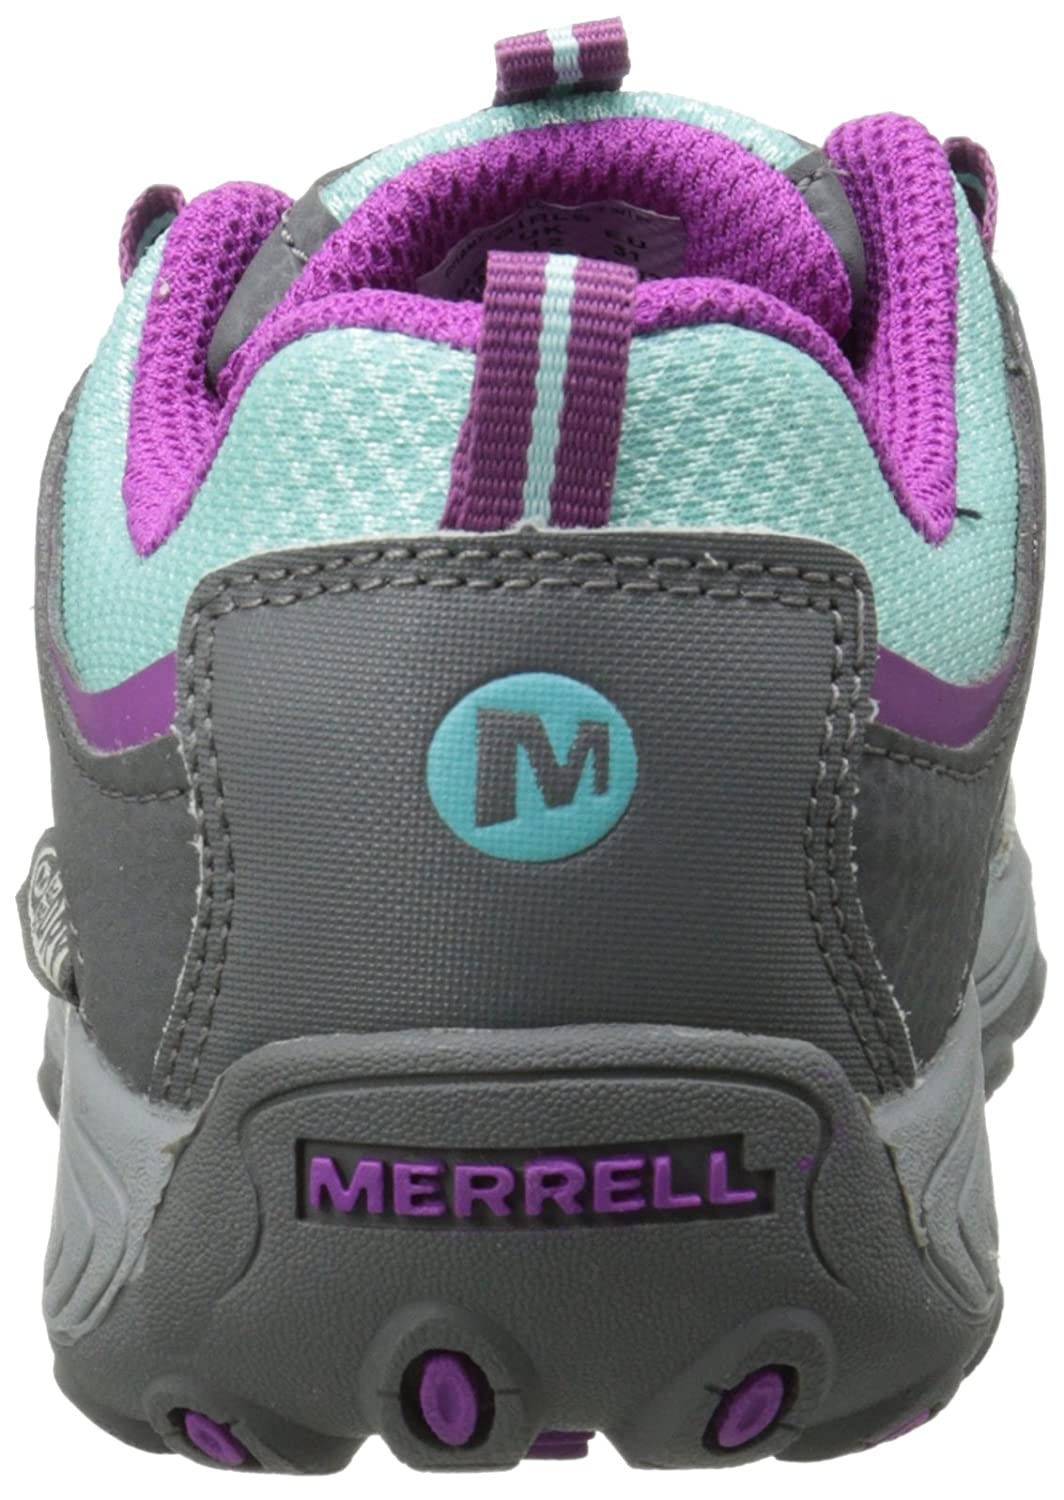 24f85478eb Merrell Unisex Kids' Chameleon Lace Waterproof Low Rise Hiking Shoes:  Amazon.co.uk: Shoes & Bags